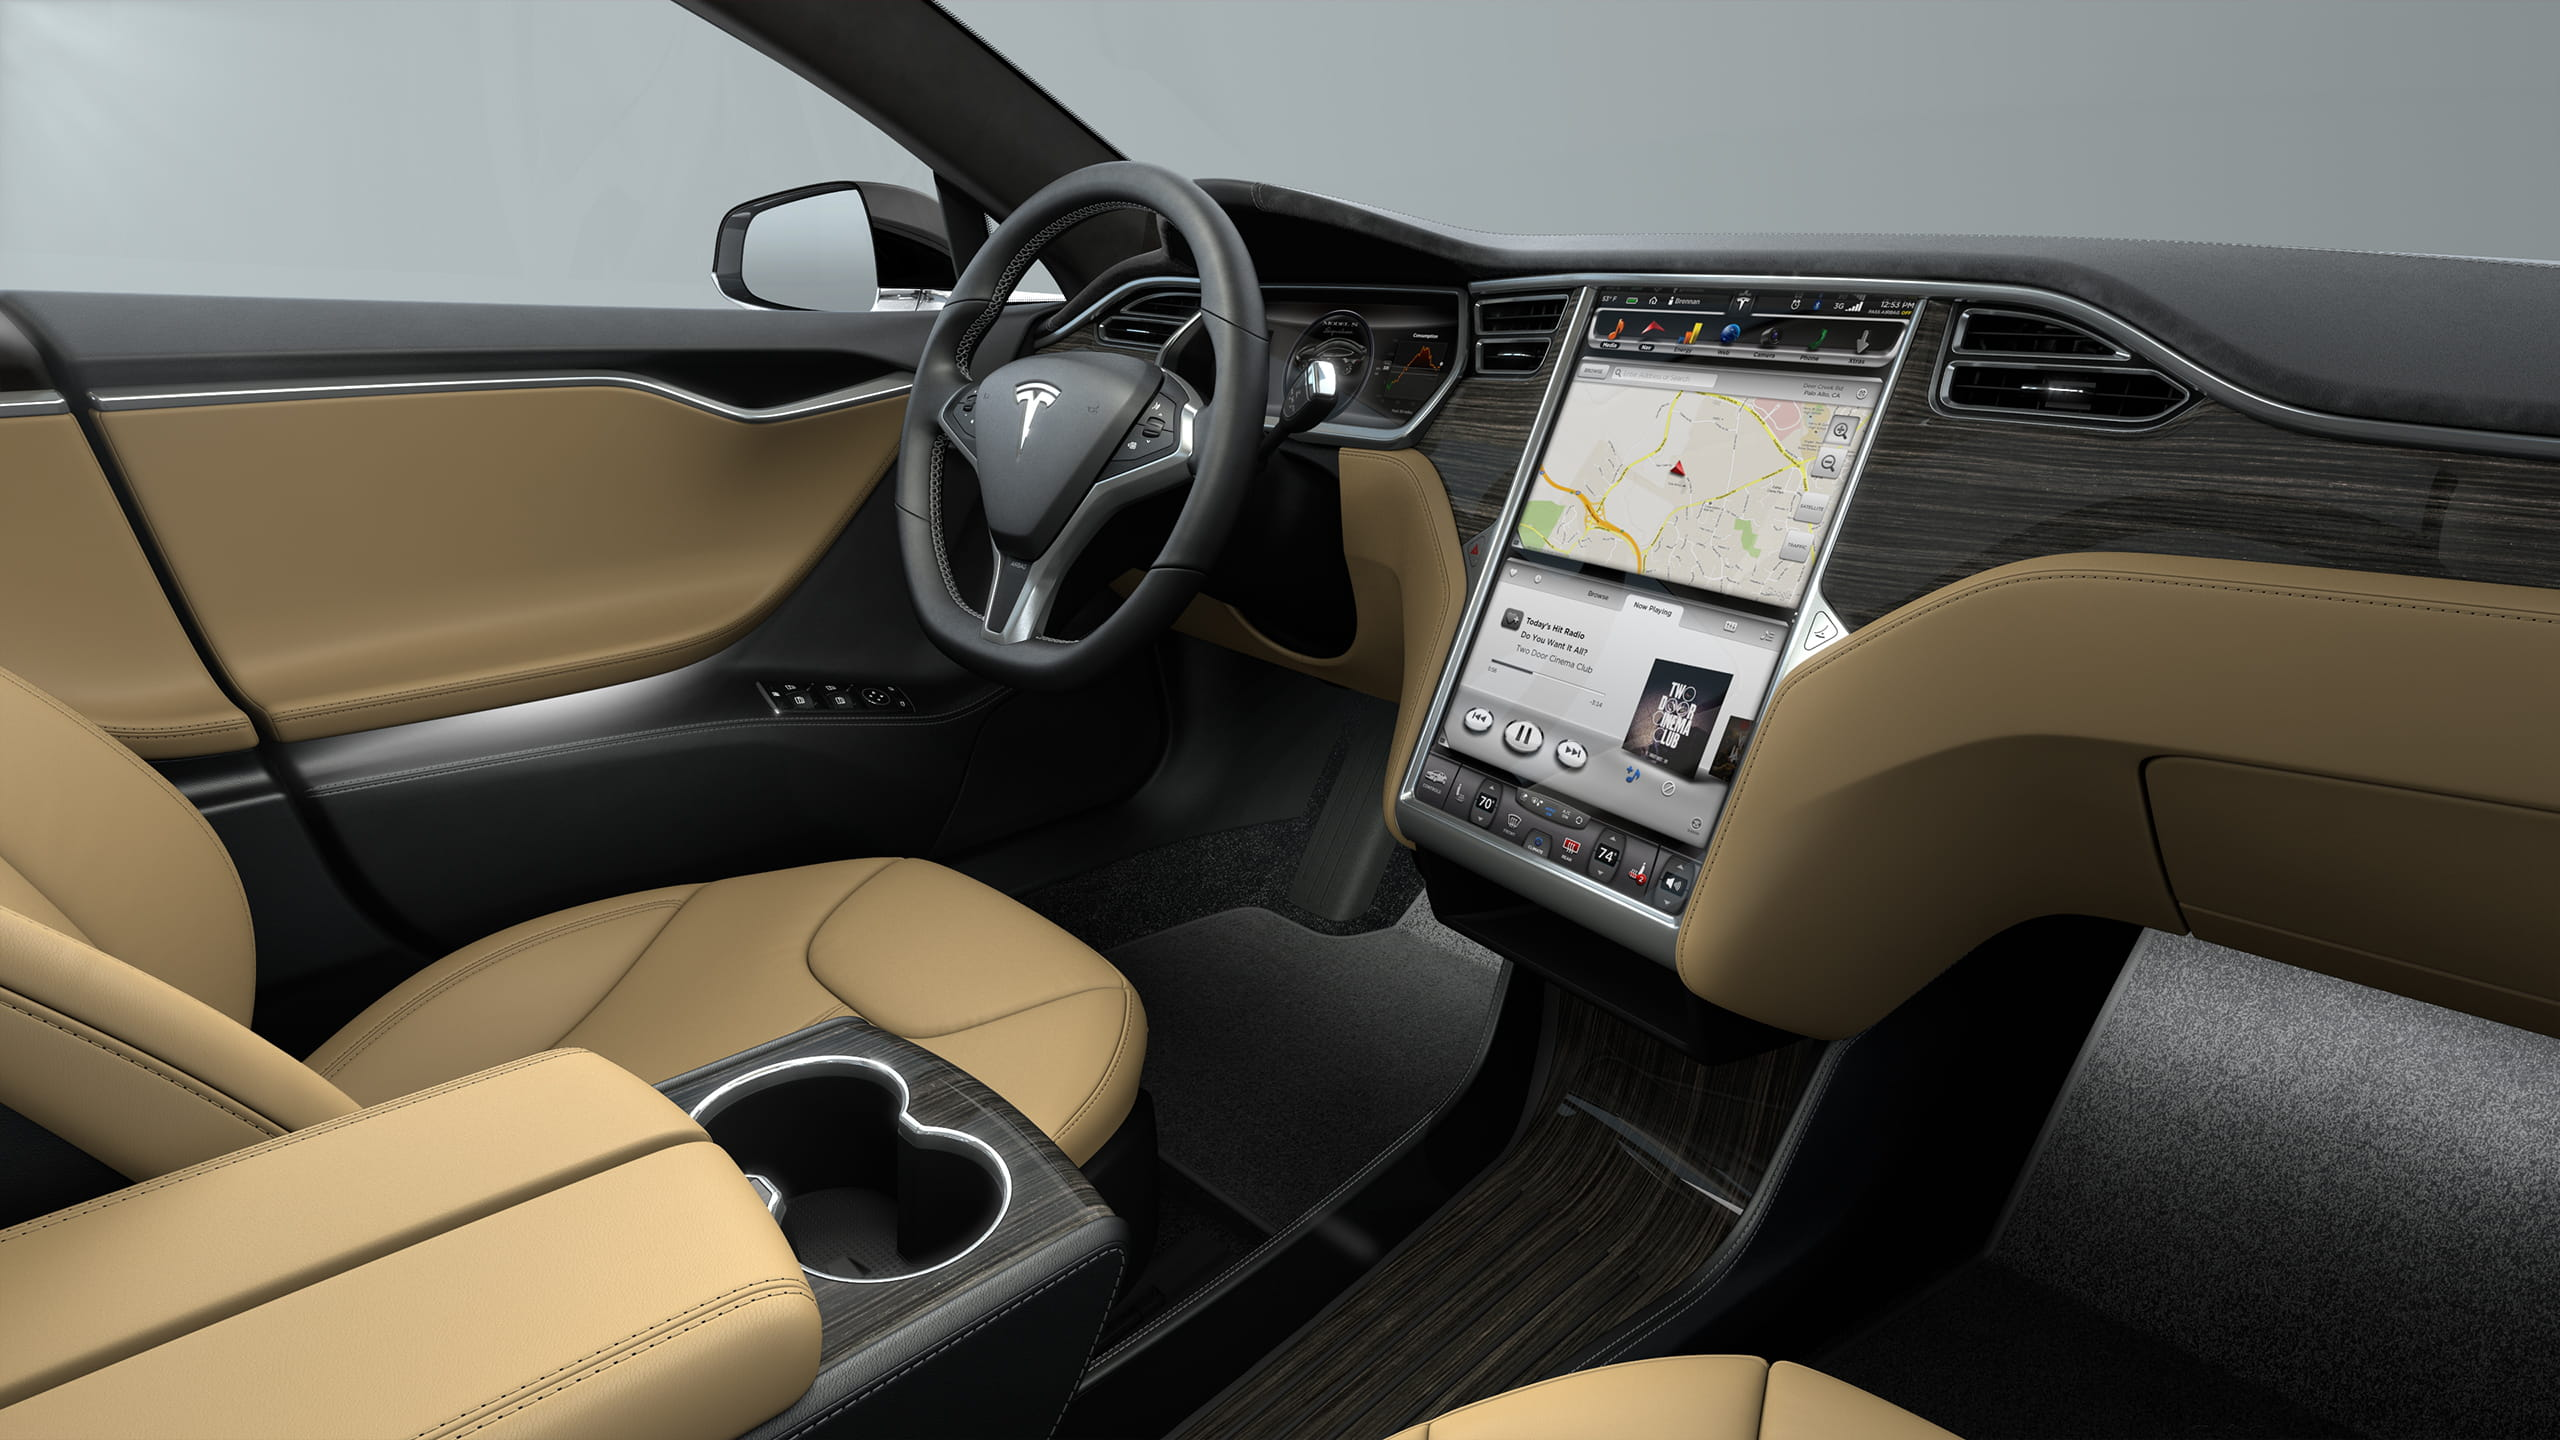 tesla d voile les versions 4x4 et bi moteurs de sa model s la pointe de la technologie. Black Bedroom Furniture Sets. Home Design Ideas